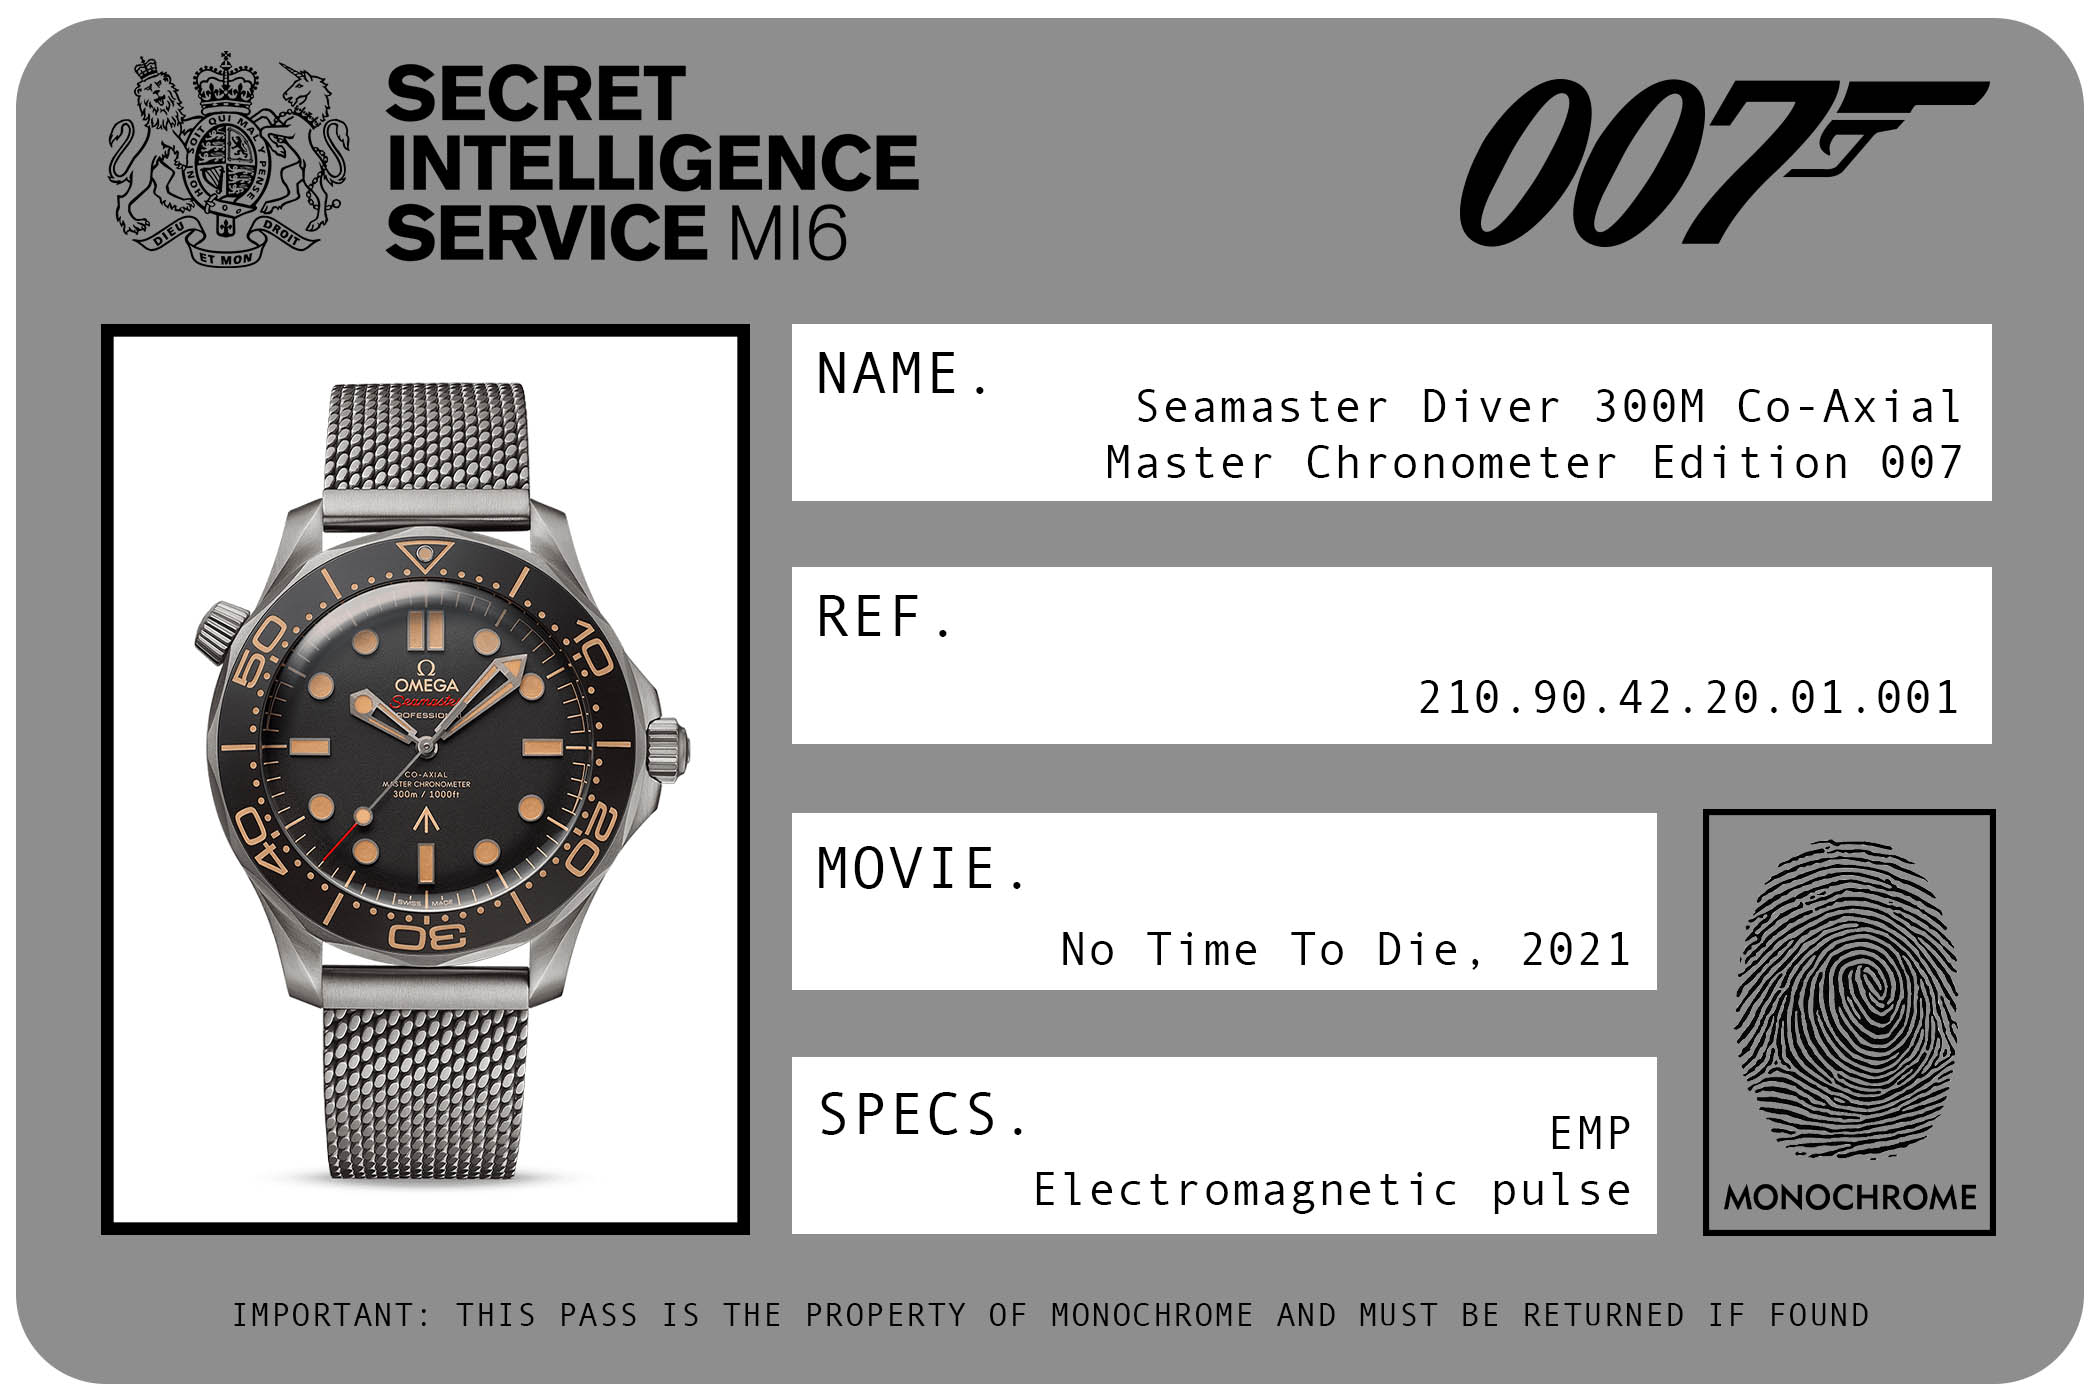 Omega Seamaster Diver 300M Co-Axial Master-Chronometer Edition 007 Titanium 210.90.42.20.01.001 James Bond No Time To Die ID Card 2021